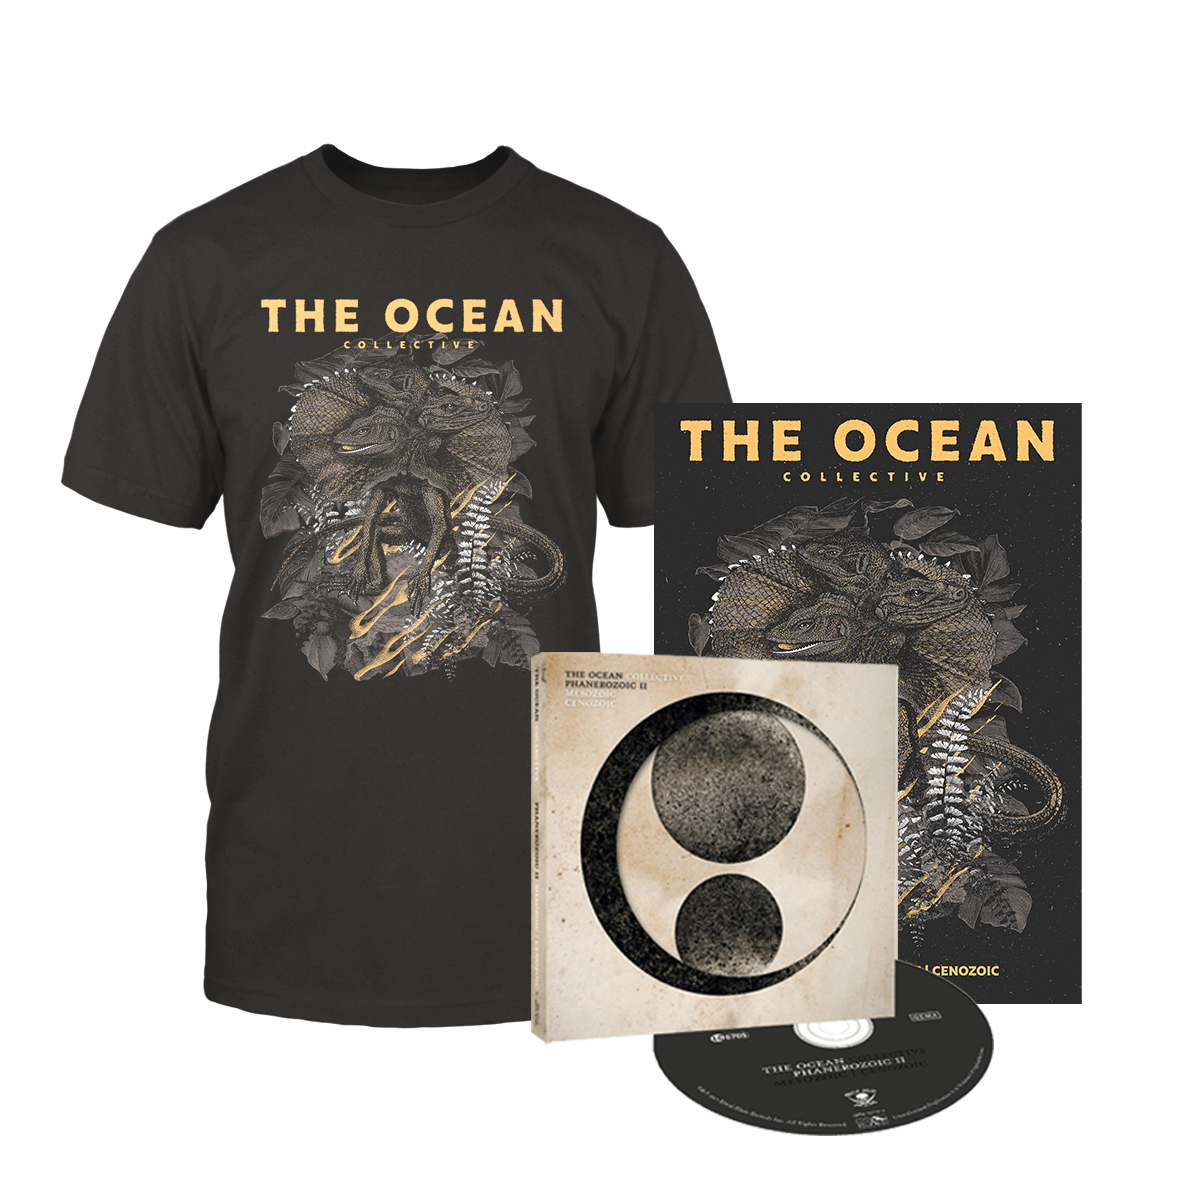 THE OCEAN // PHANEROZOIC II - DELUXE CD BUNDLE - Wild Thing Records